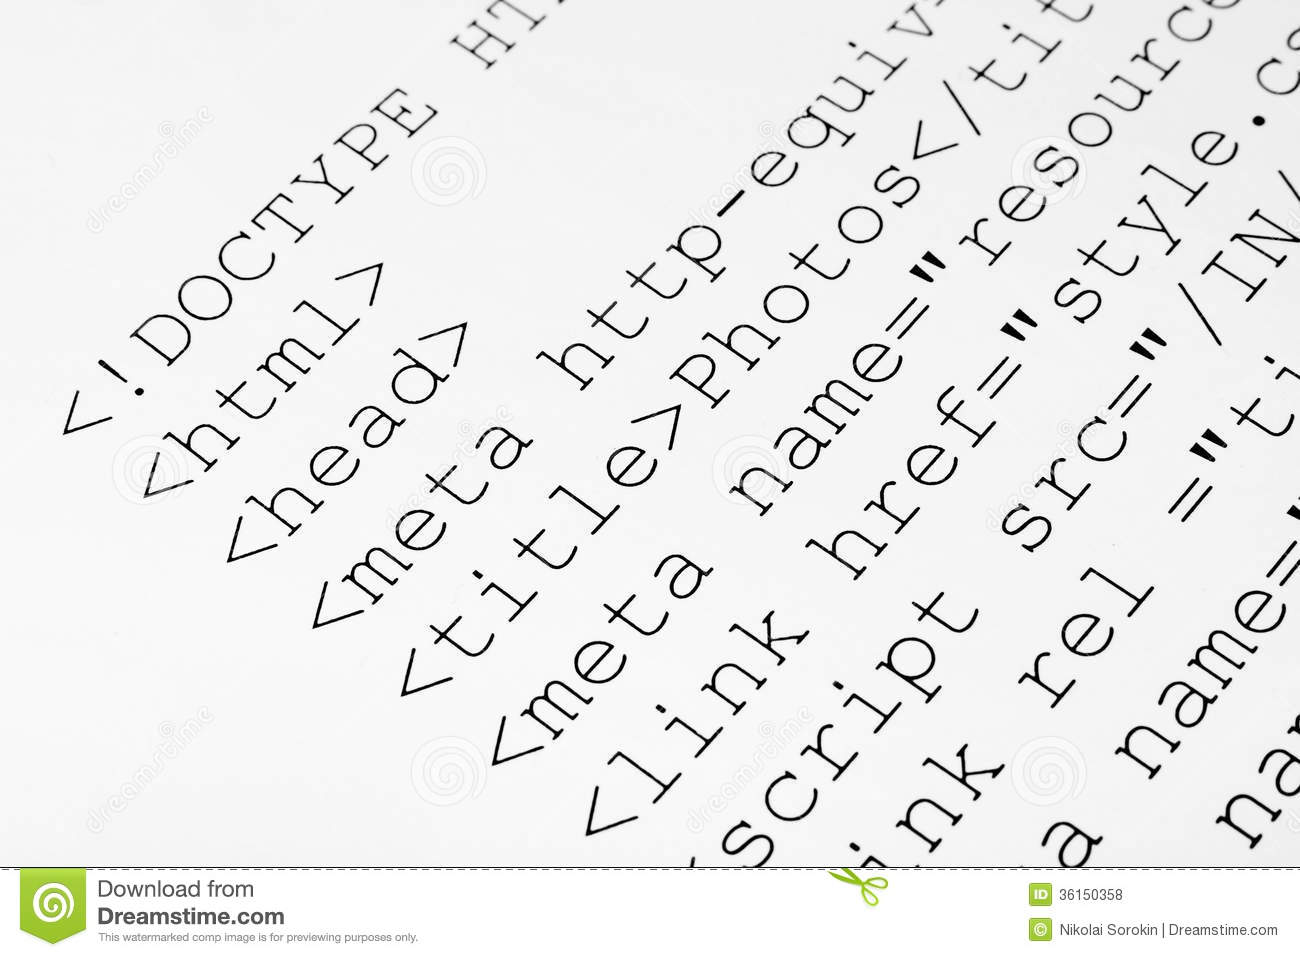 Printed internet html code stock photo. Image of listing